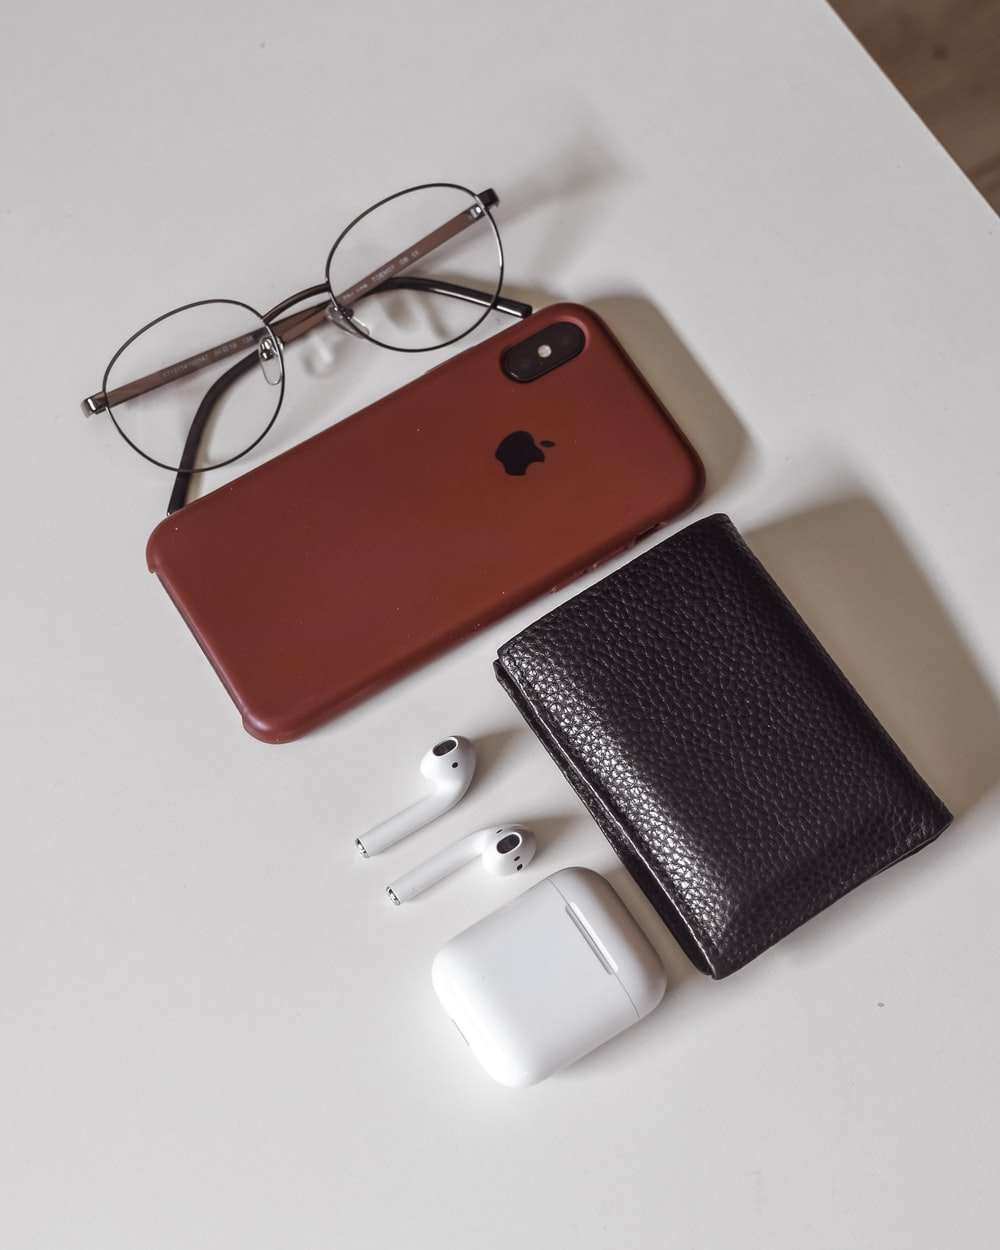 red and black iphone case beside white leather wallet